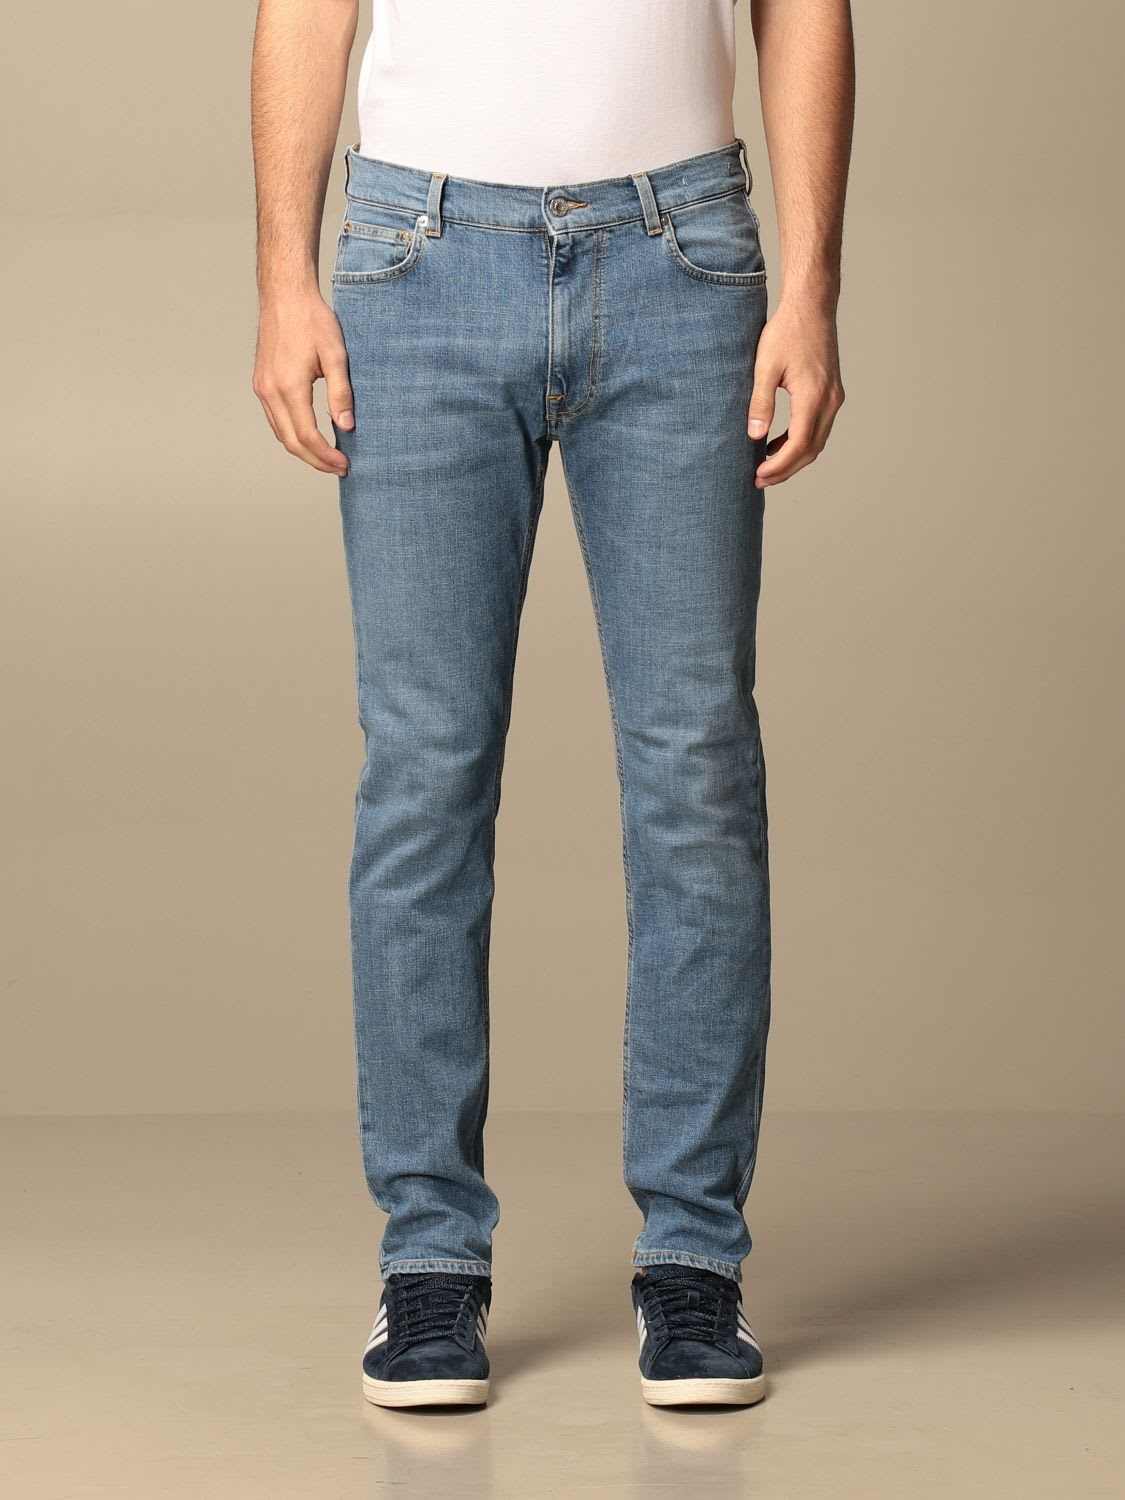 Grifoni Jeans Jude Grifoni Stretch Jeans